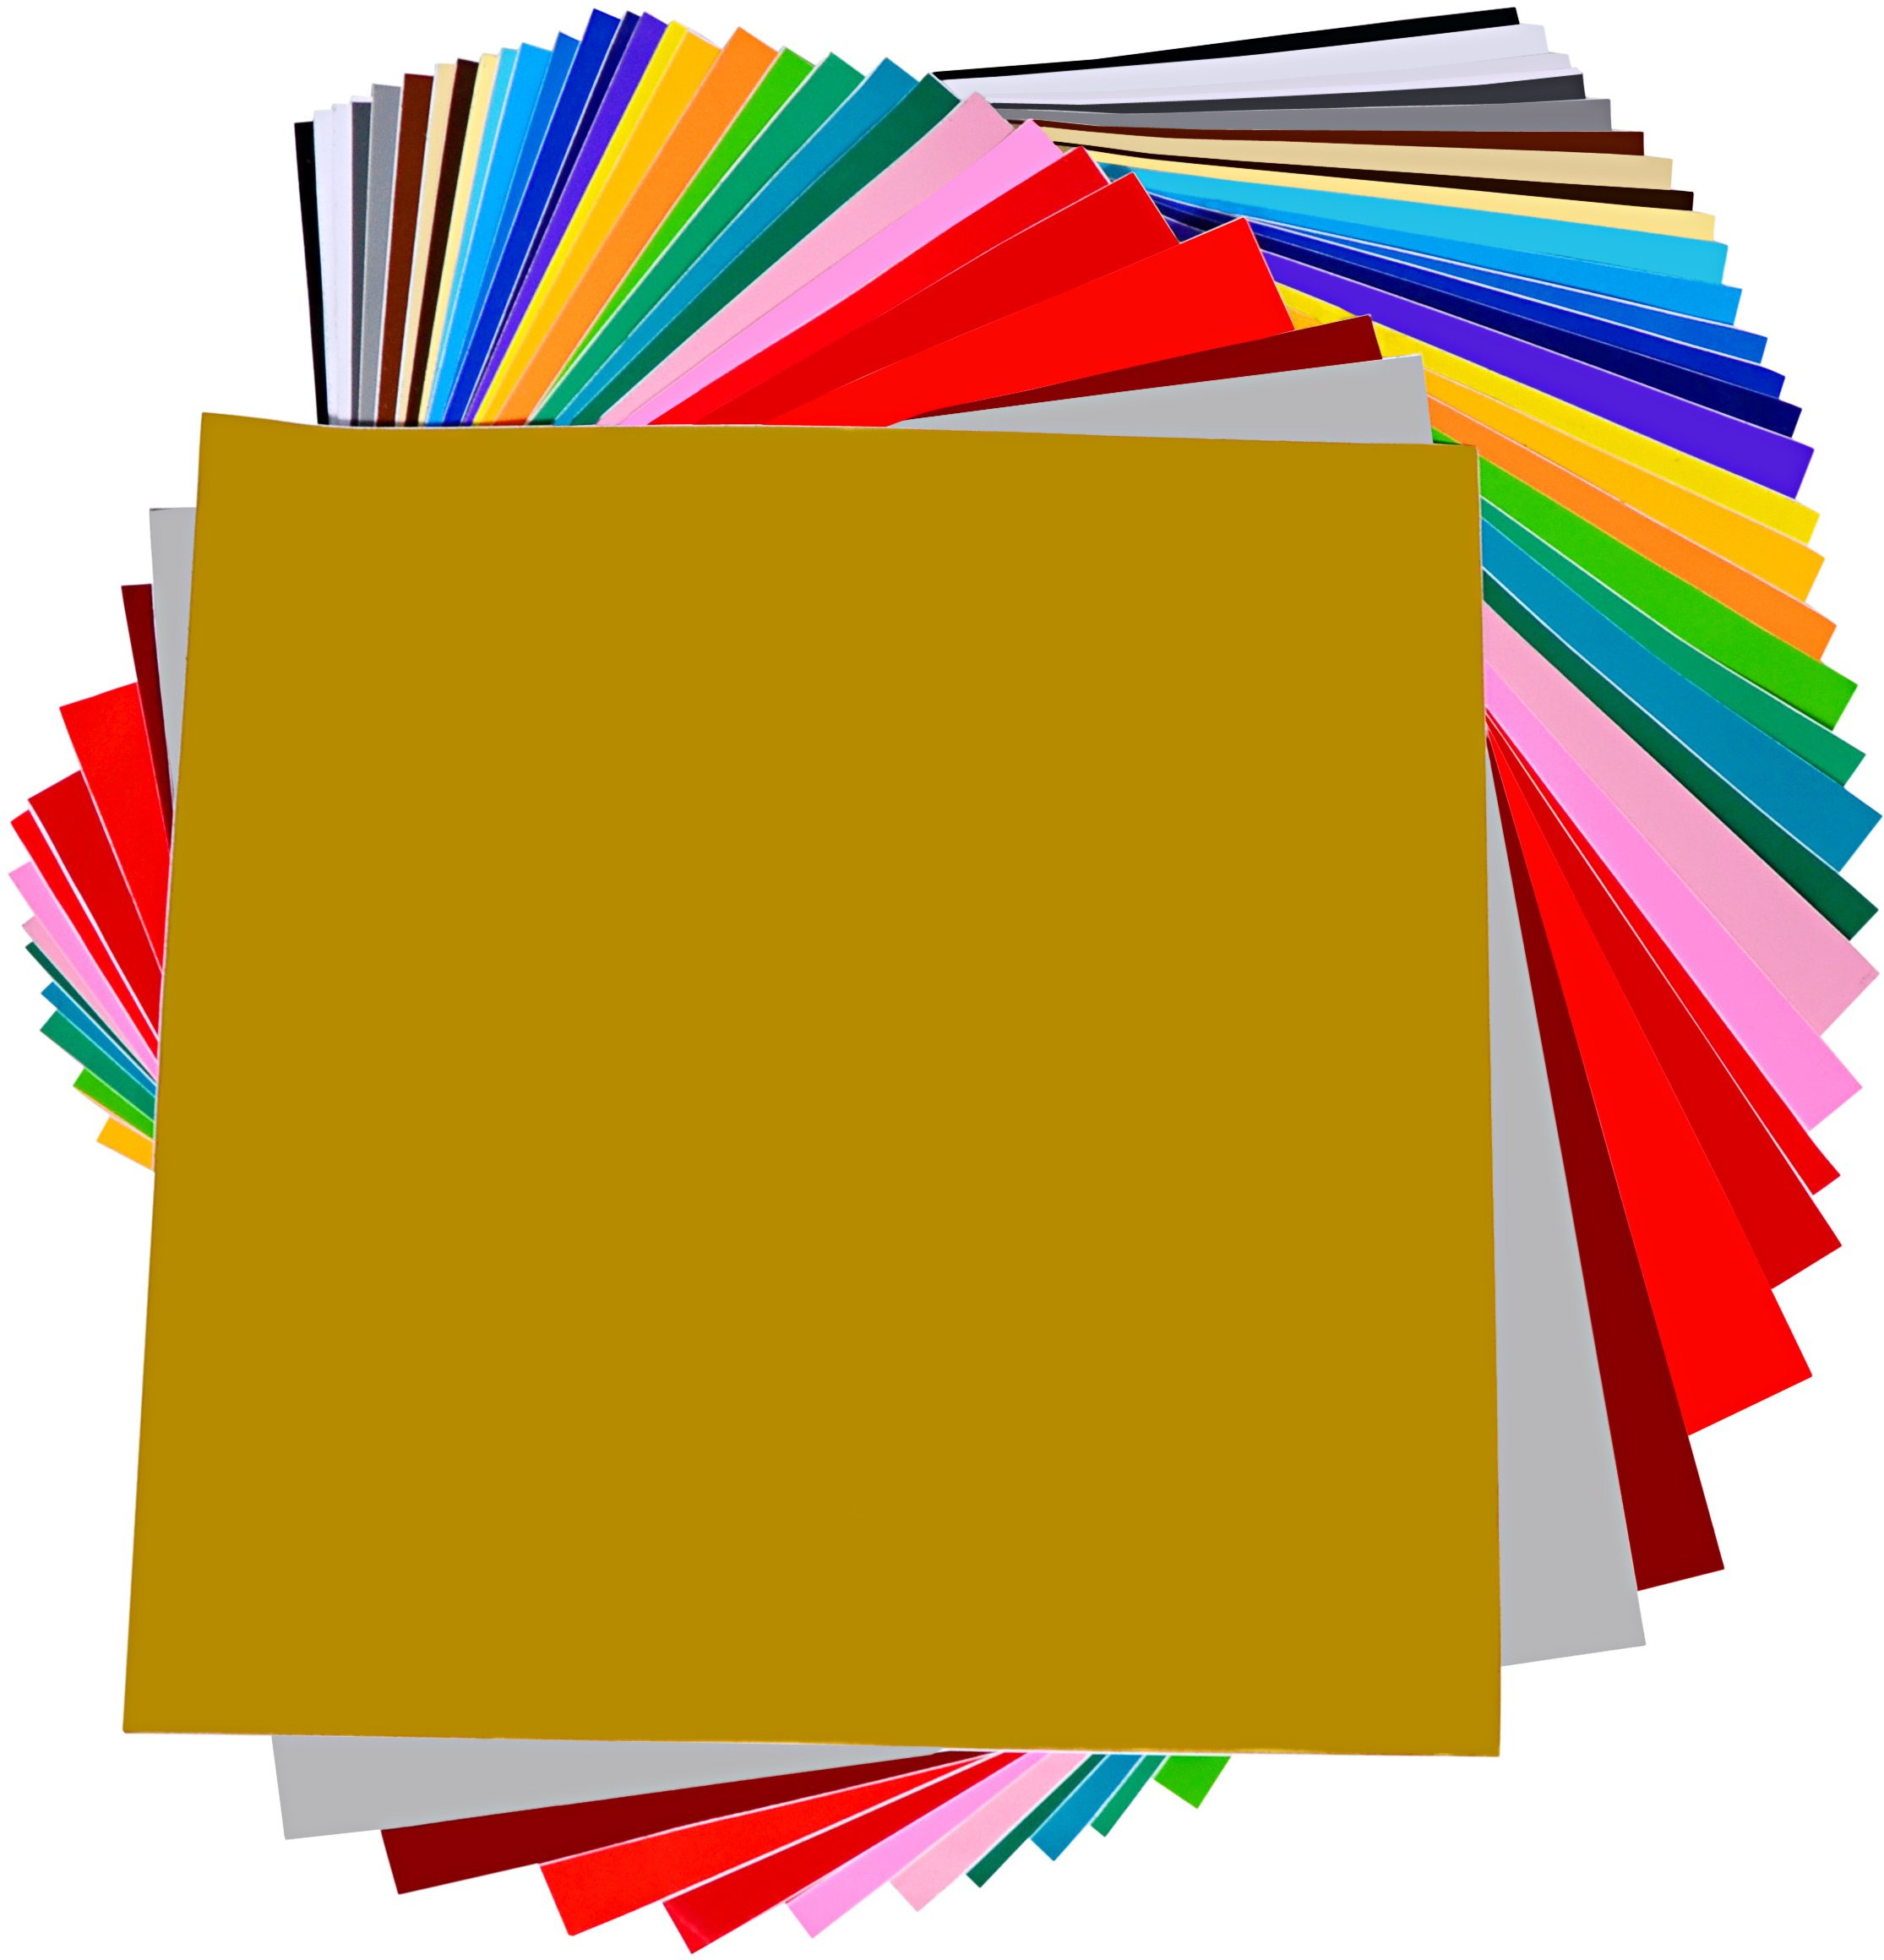 "Permanent Adhesive Backed Vinyl 40 SHEETS - PrimeCuts USA - 40 SHEETS 12"" x 12"" - 40 Assorted Color Sheets for Cricut, Silhouette Cameo, and Other Craft Cutters"